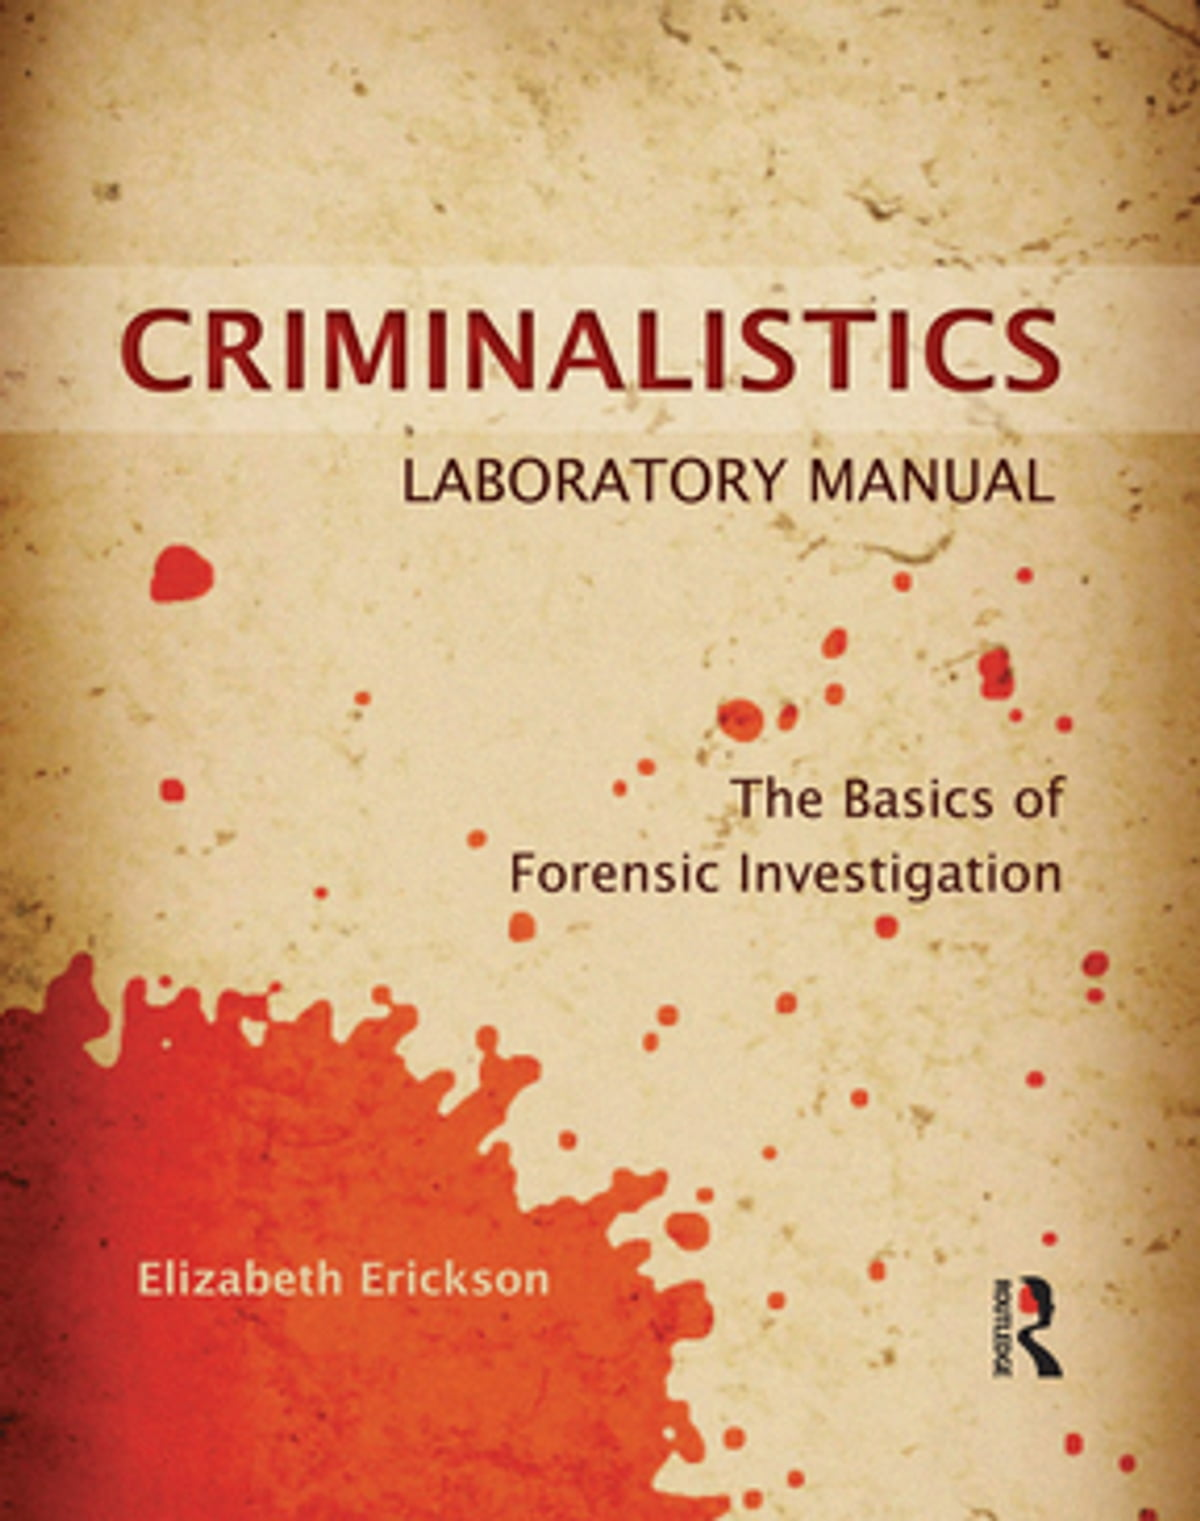 Criminalistics Laboratory Manual eBook by Elizabeth Erickson -  9781317523116 | Rakuten Kobo